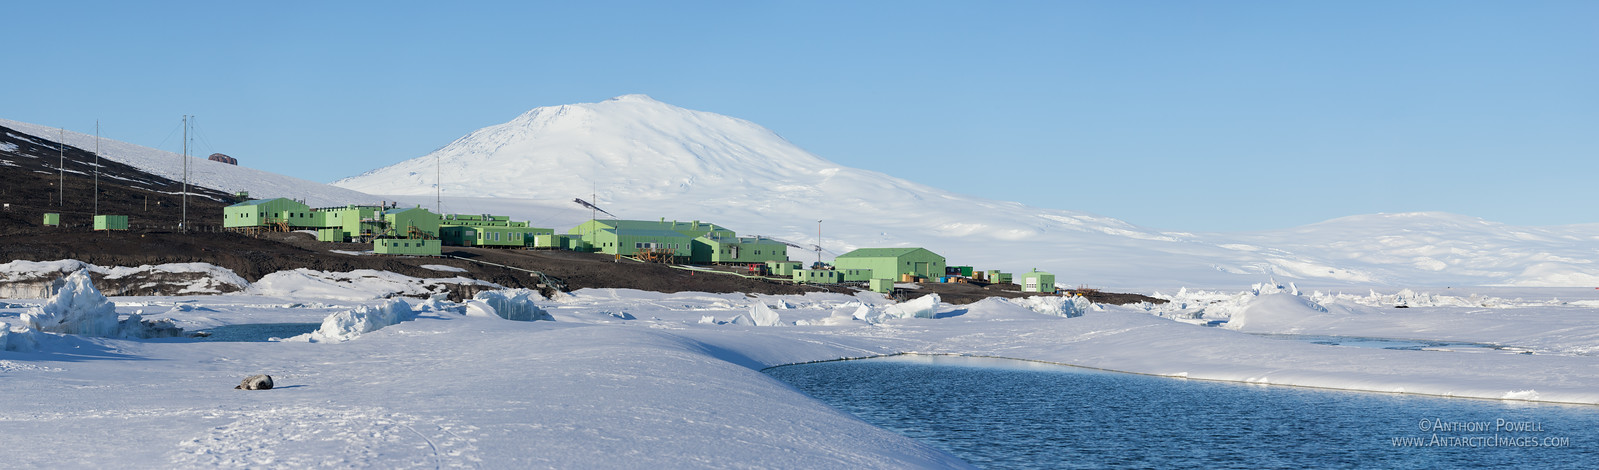 Scott Base, Mount Erebus, and melt pools forming in the sea ice in front of the base in late summer.